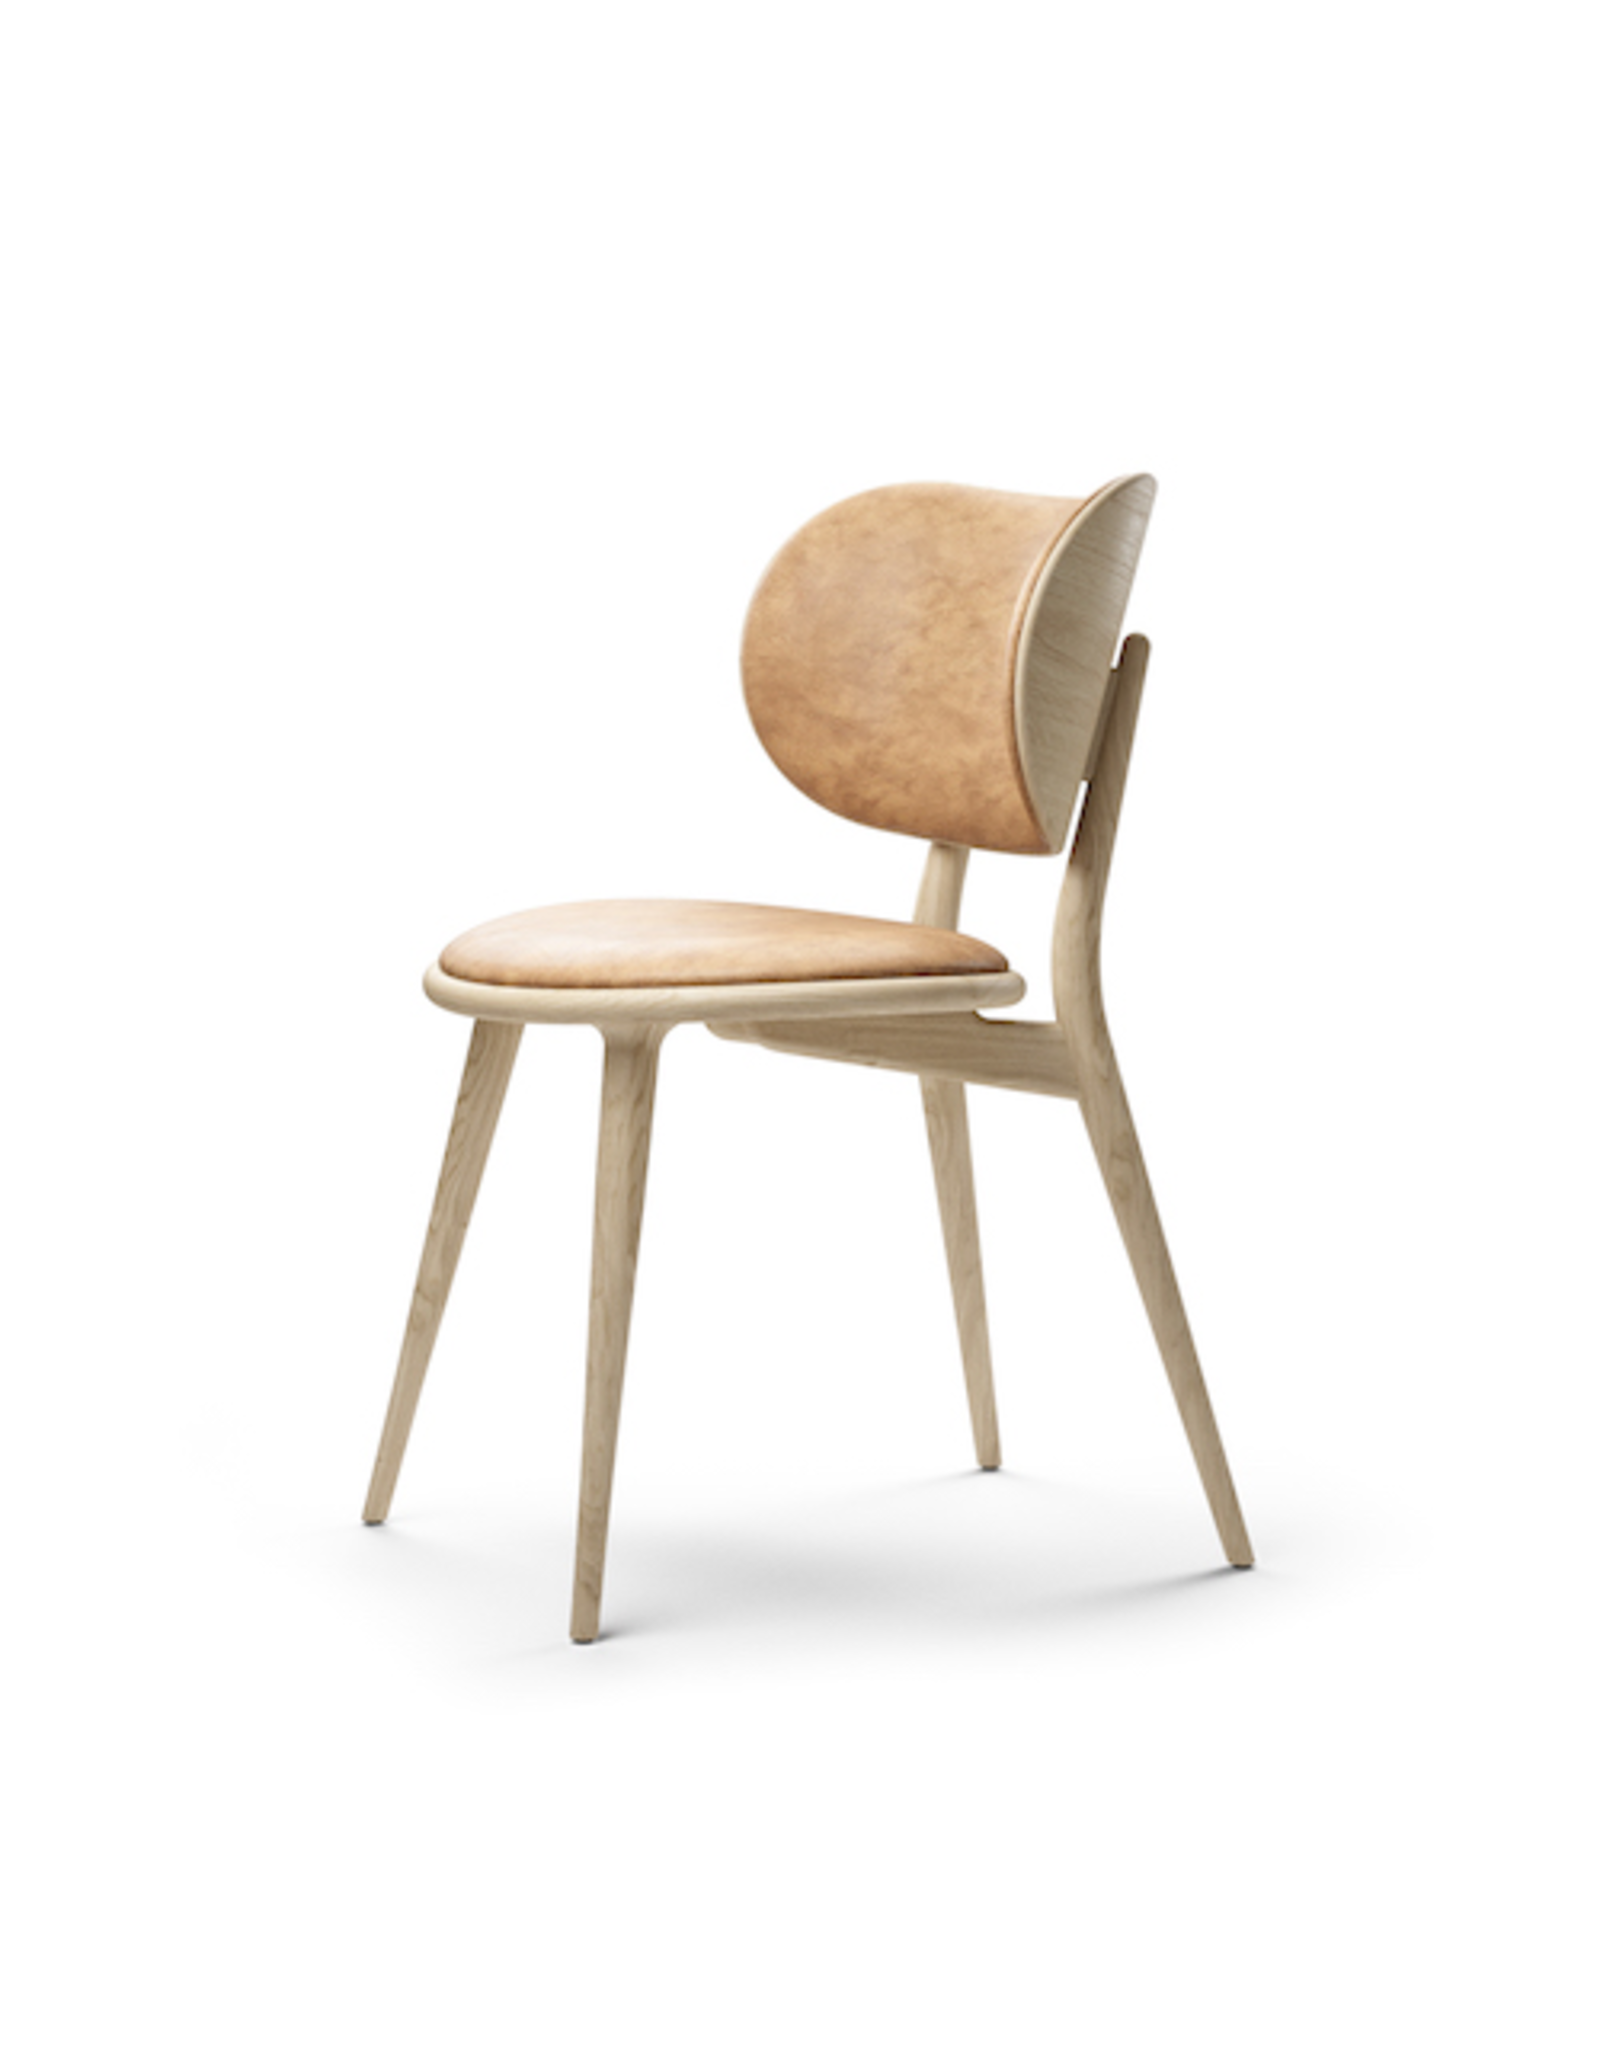 MATER THE DINING CHAIR 餐椅